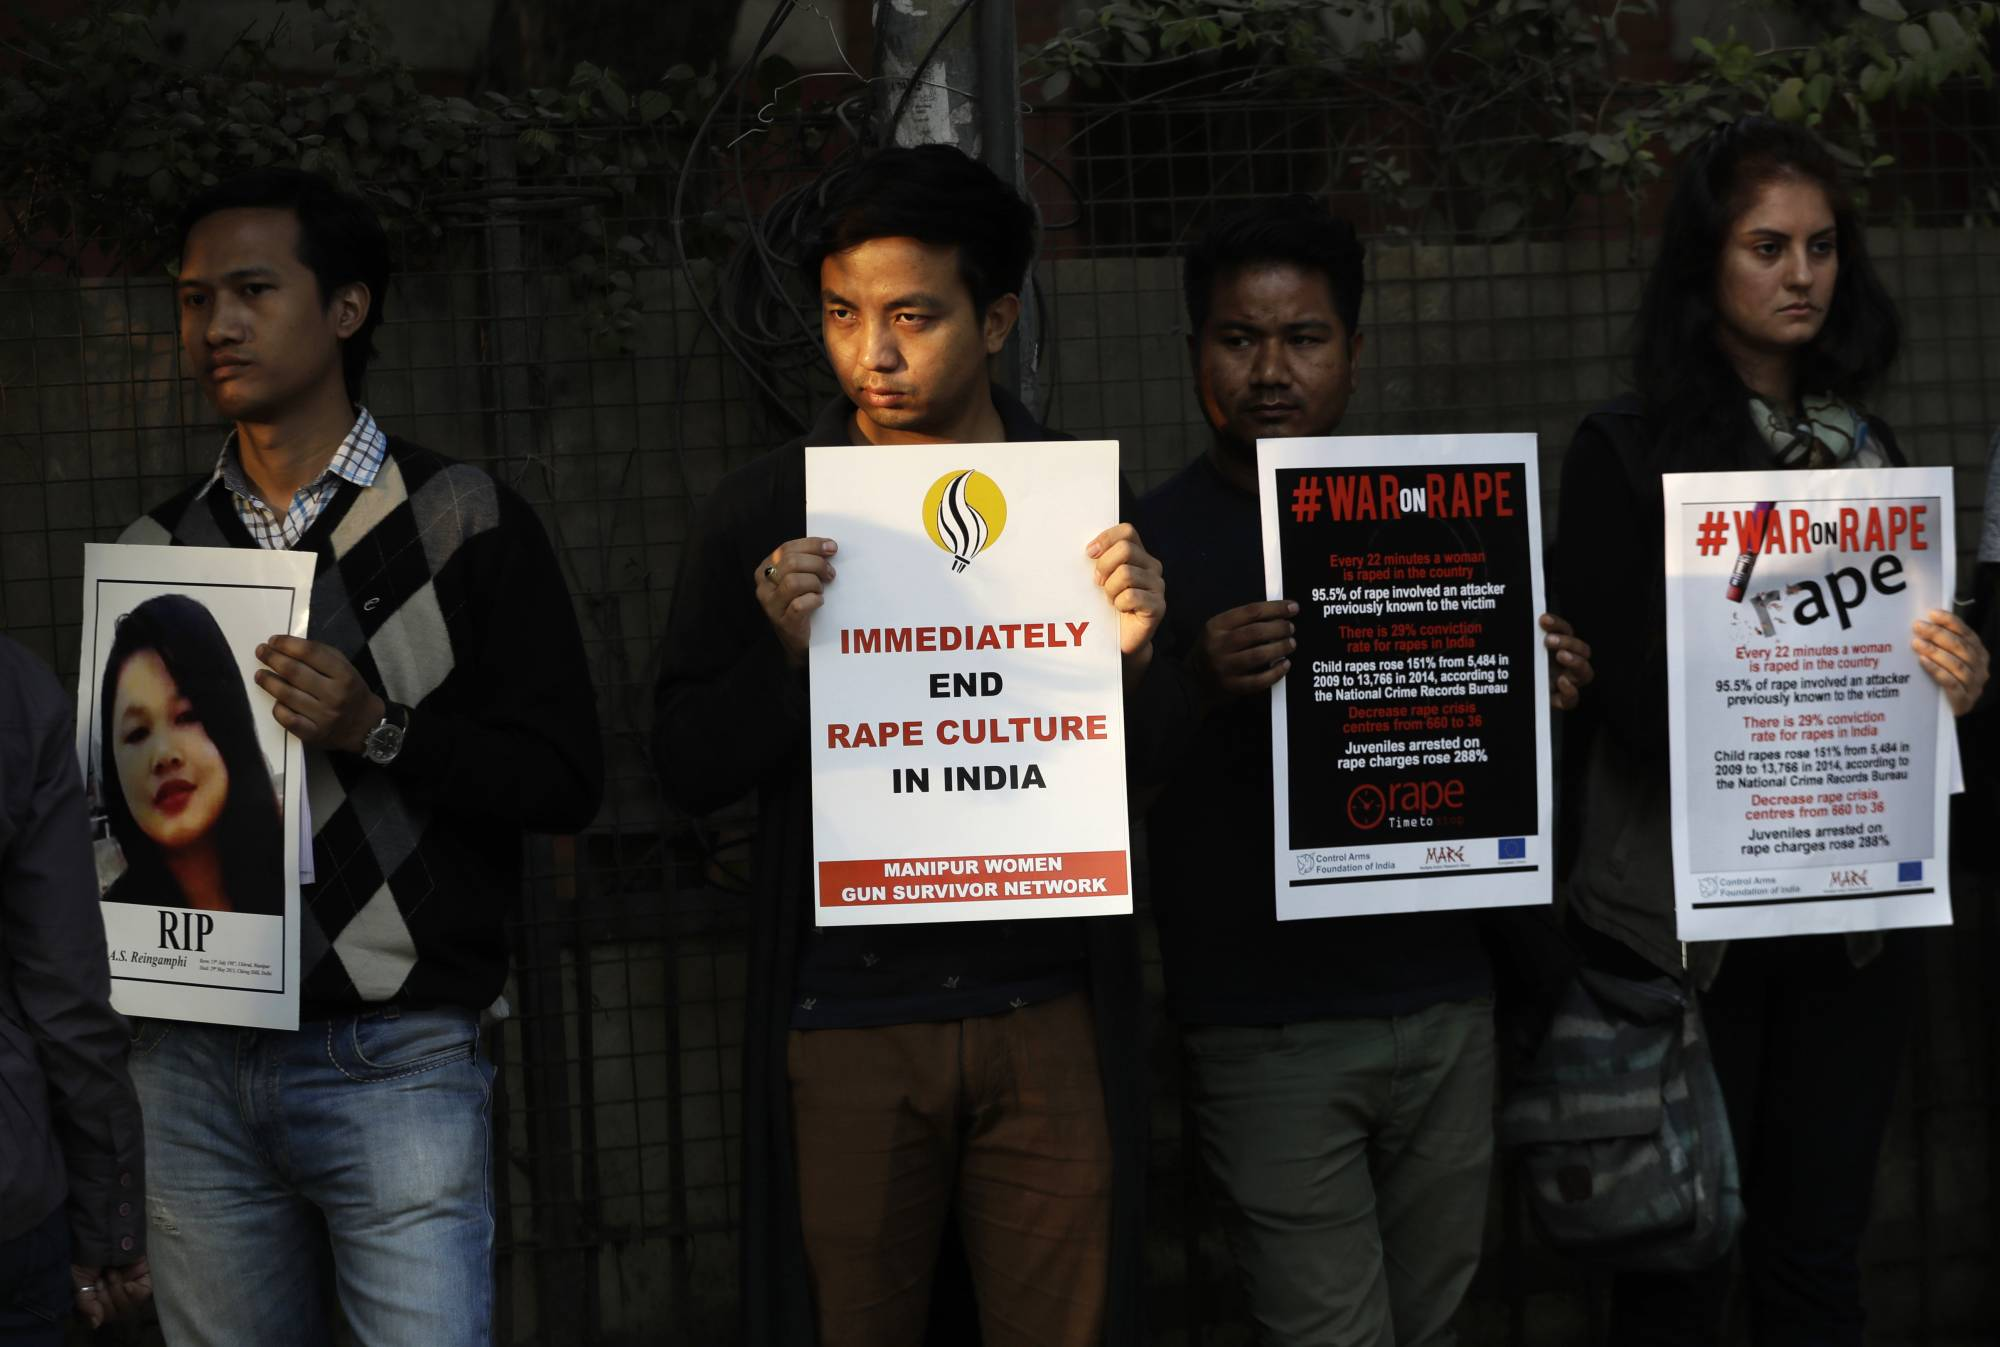 delhi gang rape New delhi-- india's top court on friday upheld the death sentences of four men who were convicted in the fatal gang-rape and torture of a 23-year-old medical student on a moving bus in the indian .